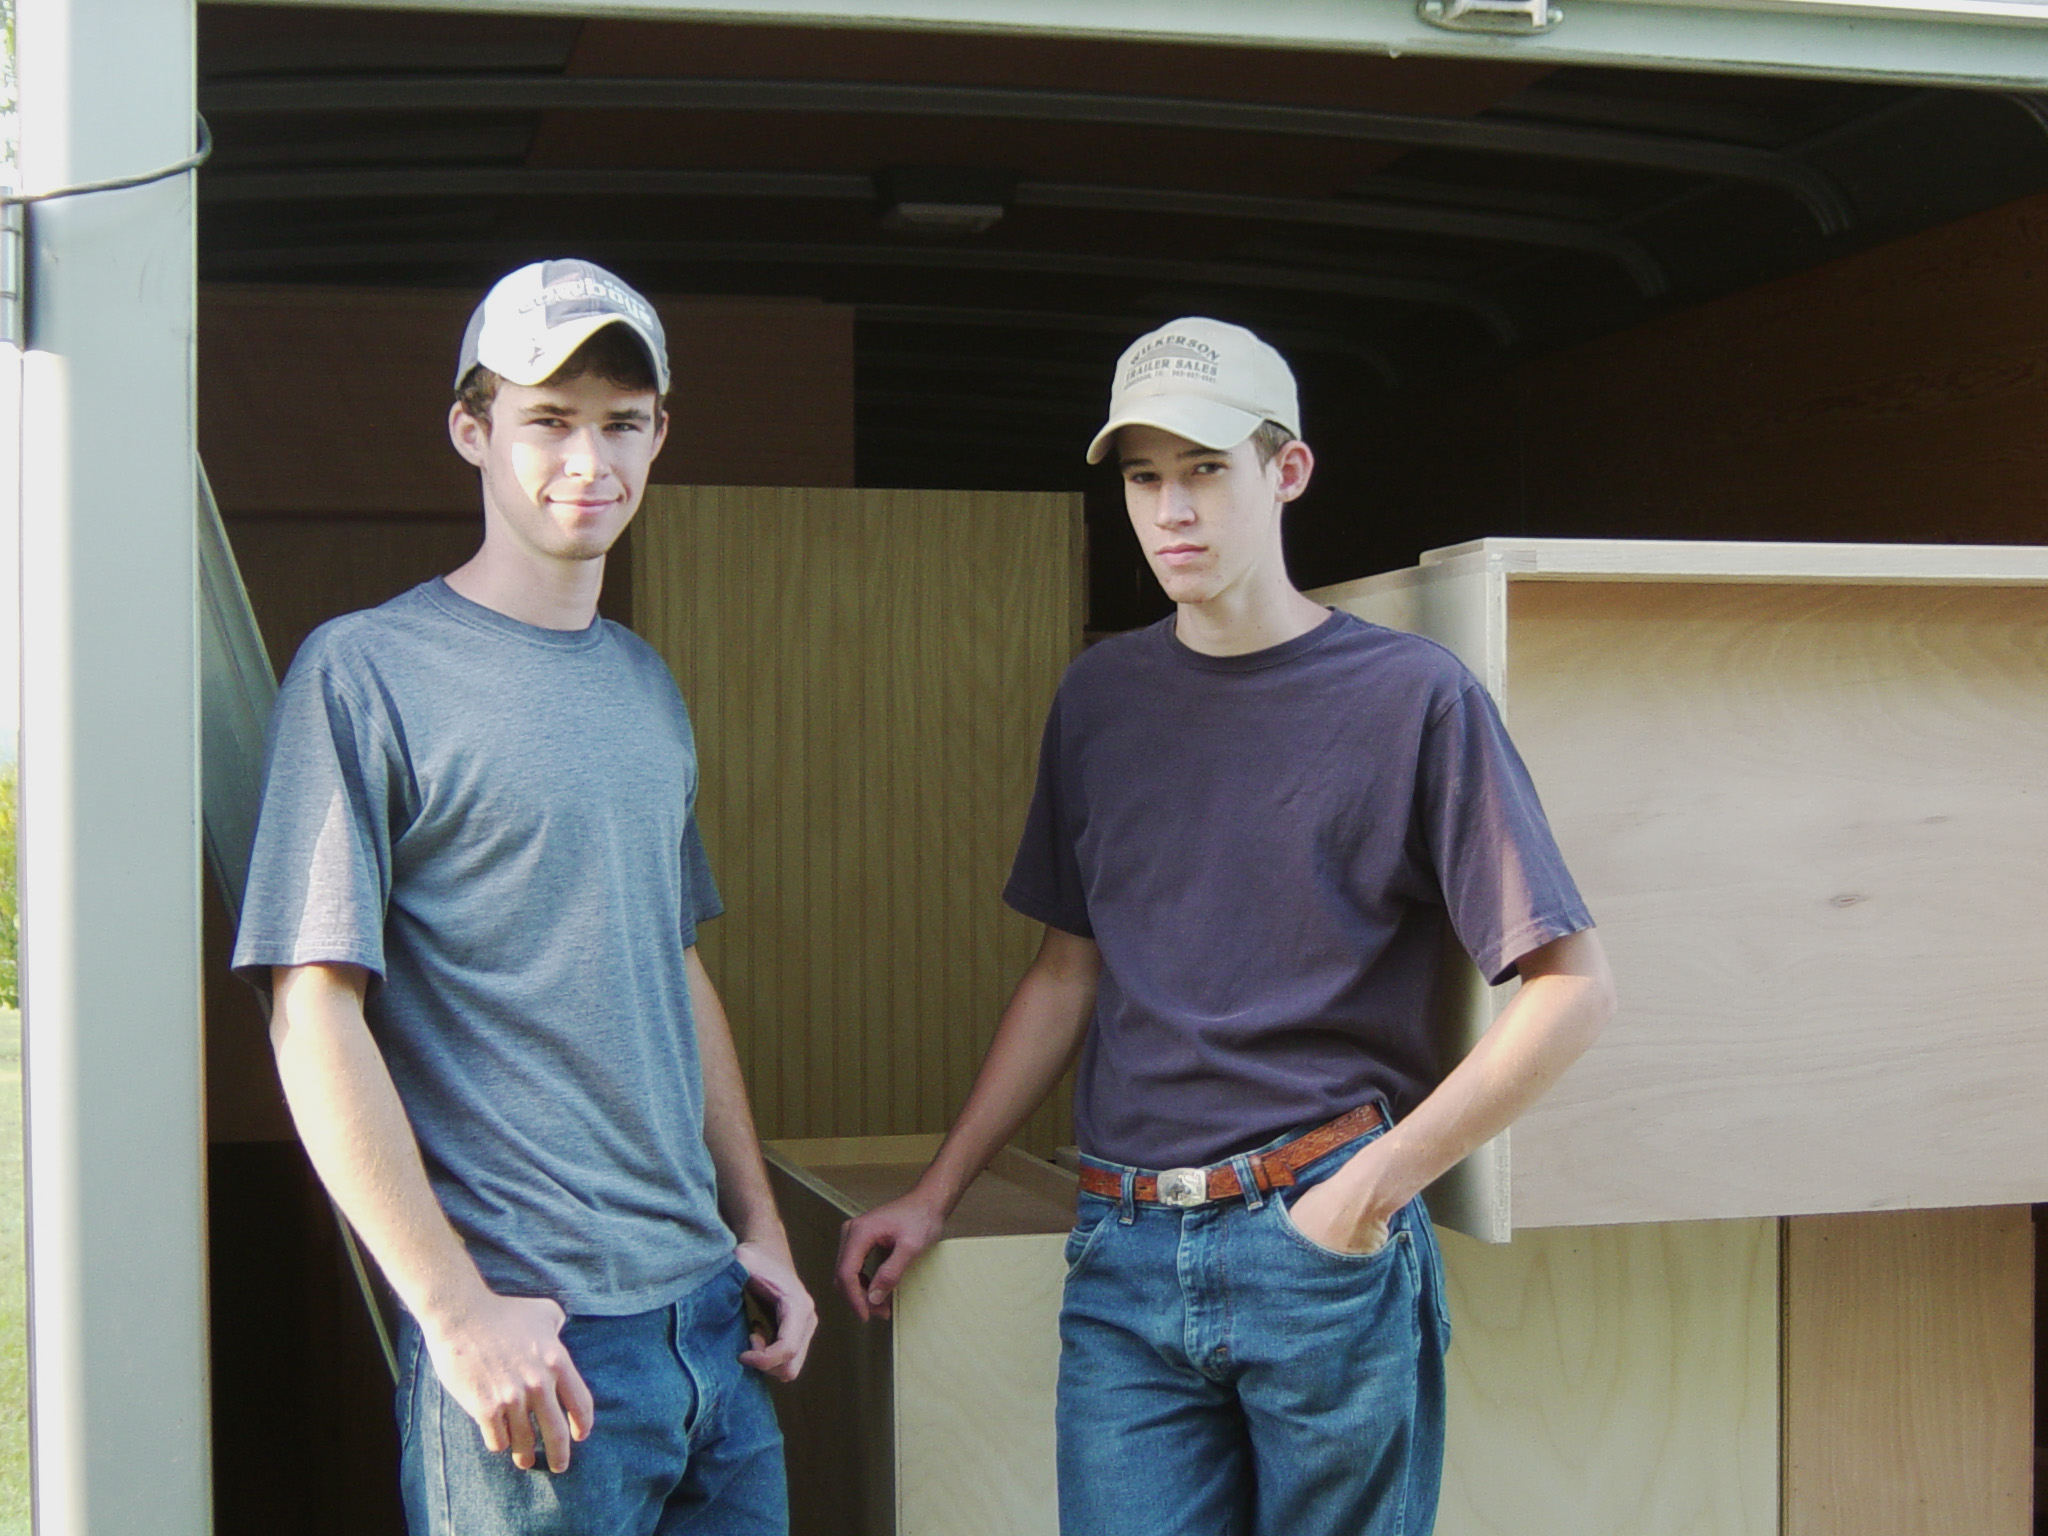 My brother James and I getting ready to set cabinets sometime in 2003.